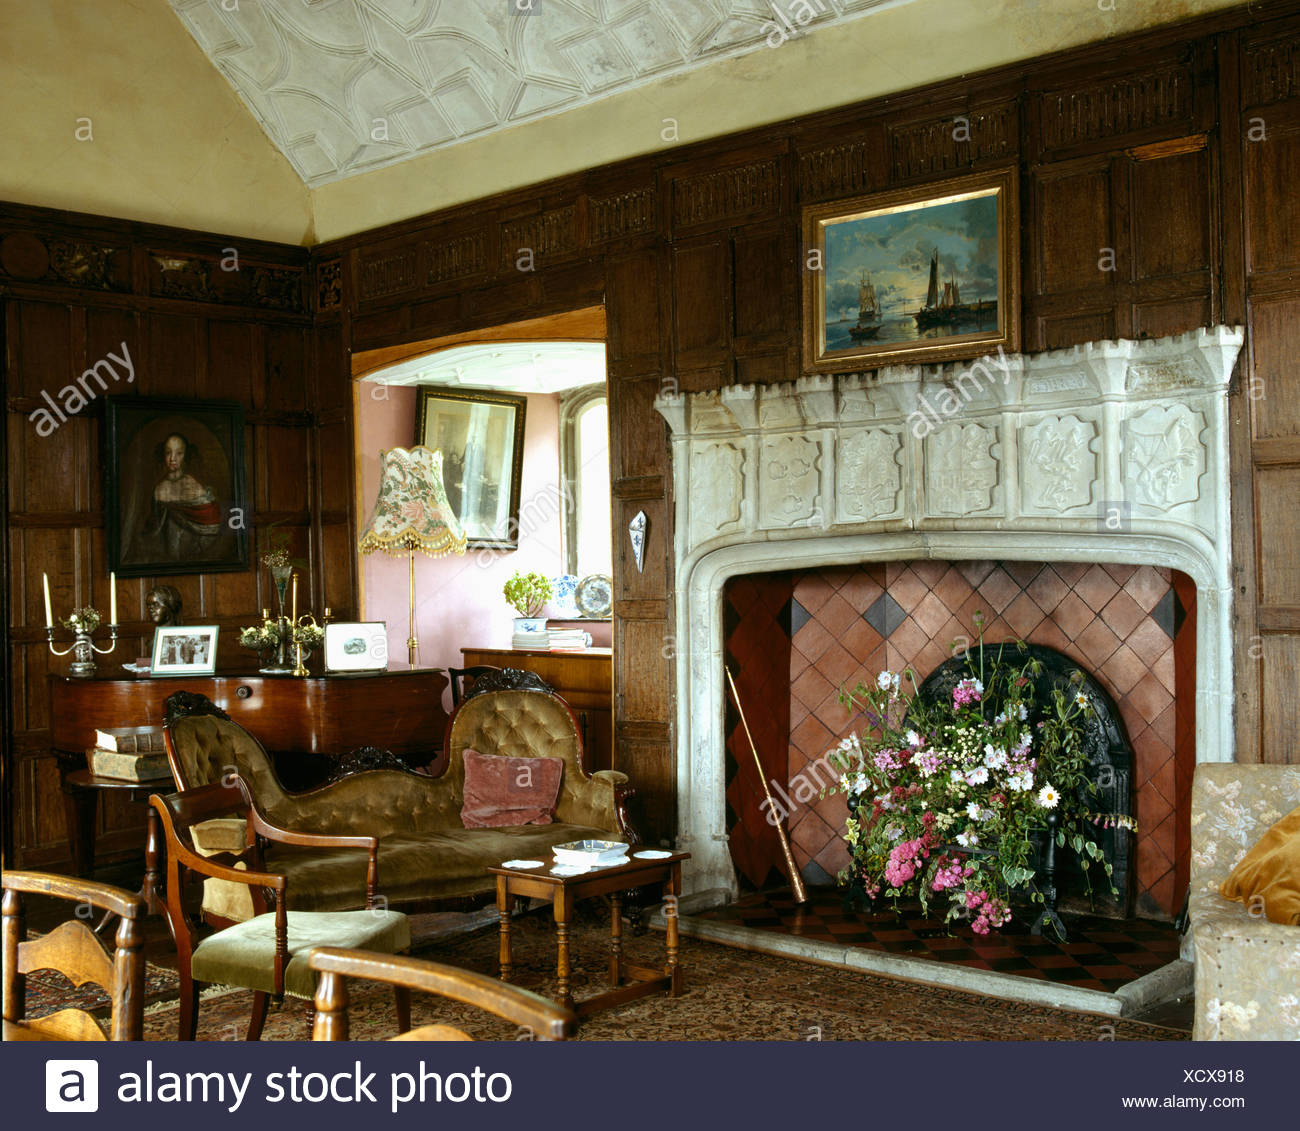 Carved stone fireplace in panelled country sitting room - Stock Image